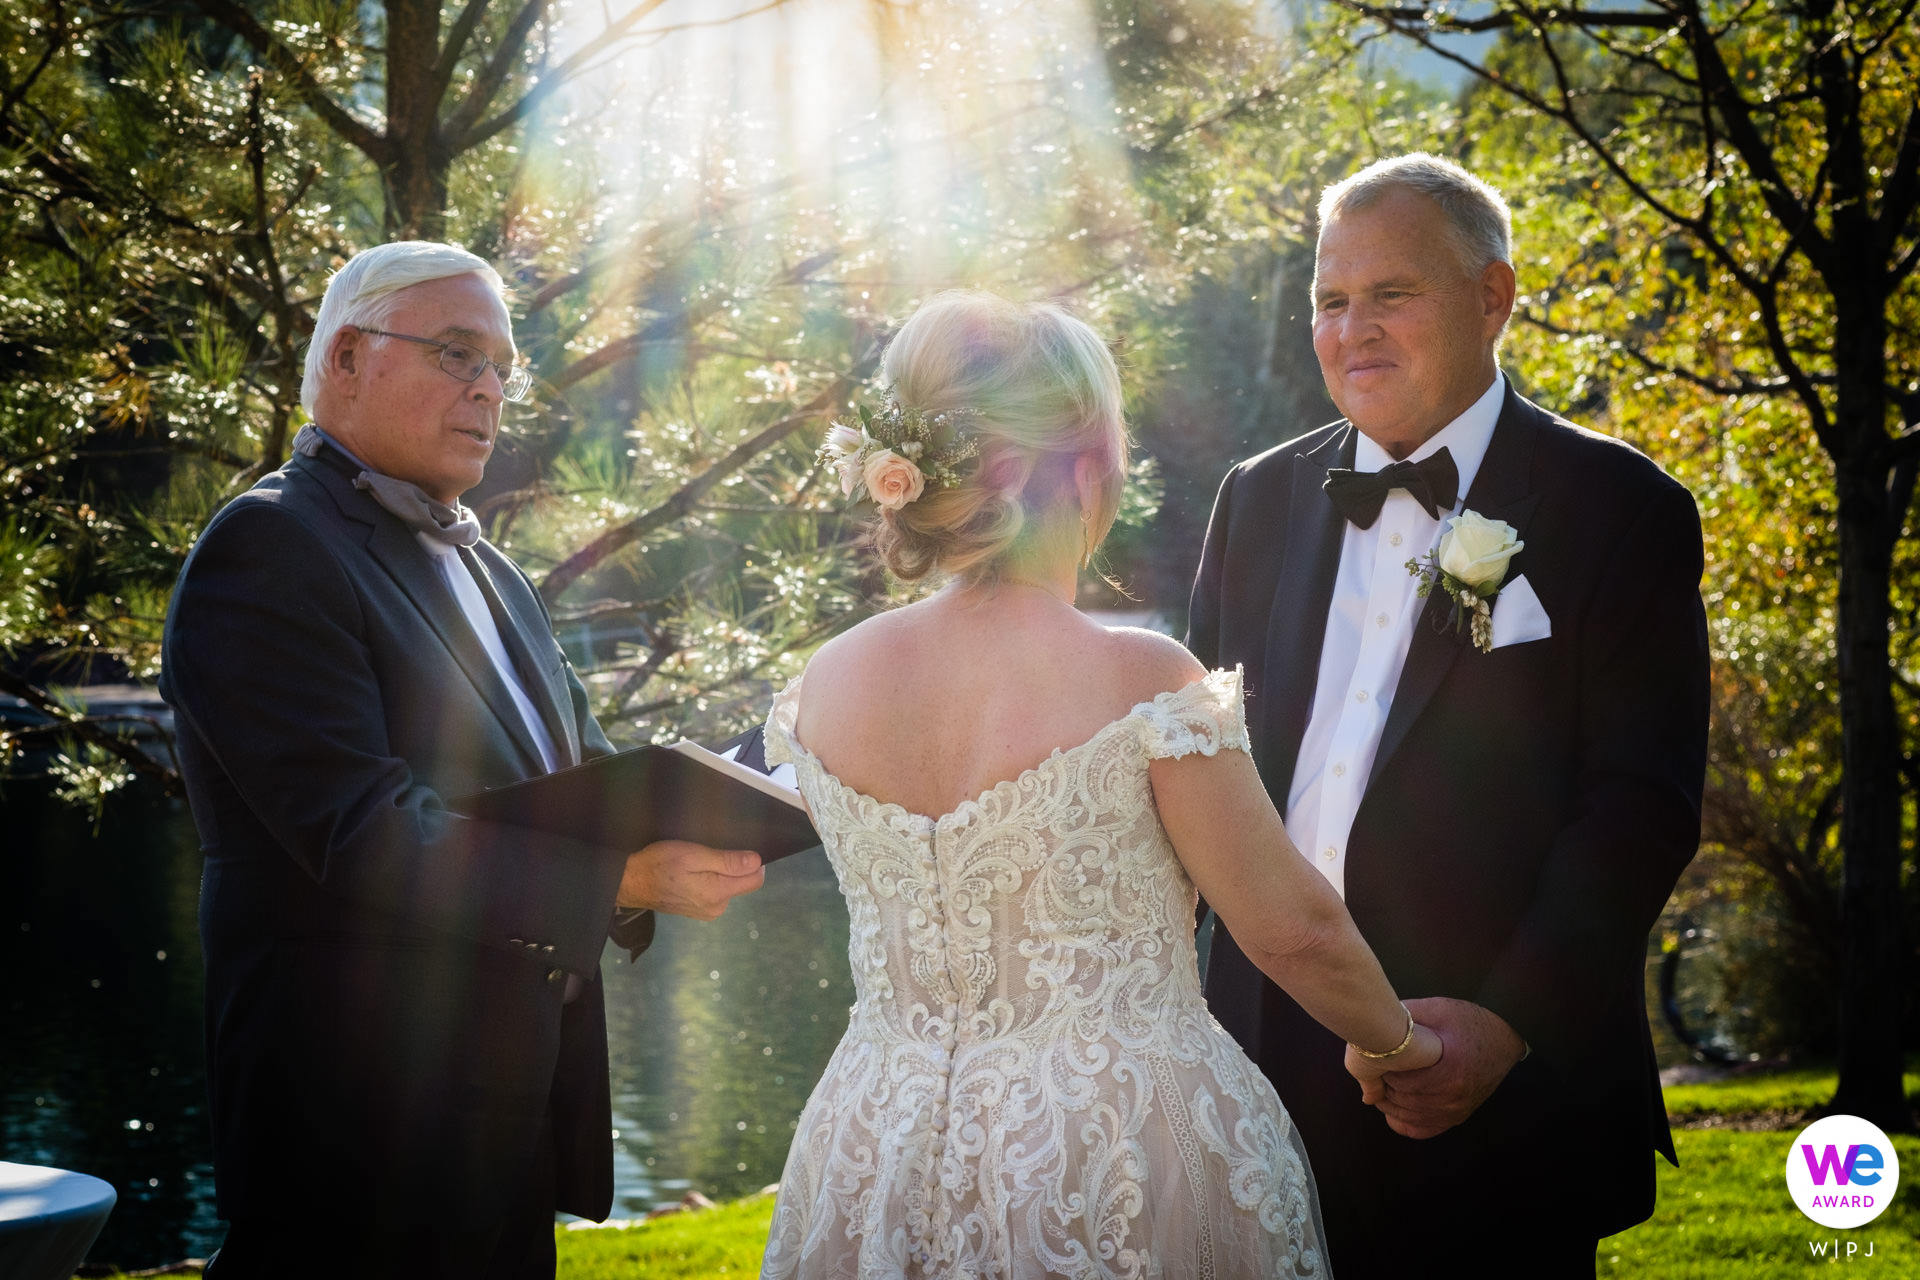 Broadmoor of Colorado Springs - Weddings Photographer | Elopement officiant, Rev. Steve Koeppen, performed the ceremony on the lawn next to the lake